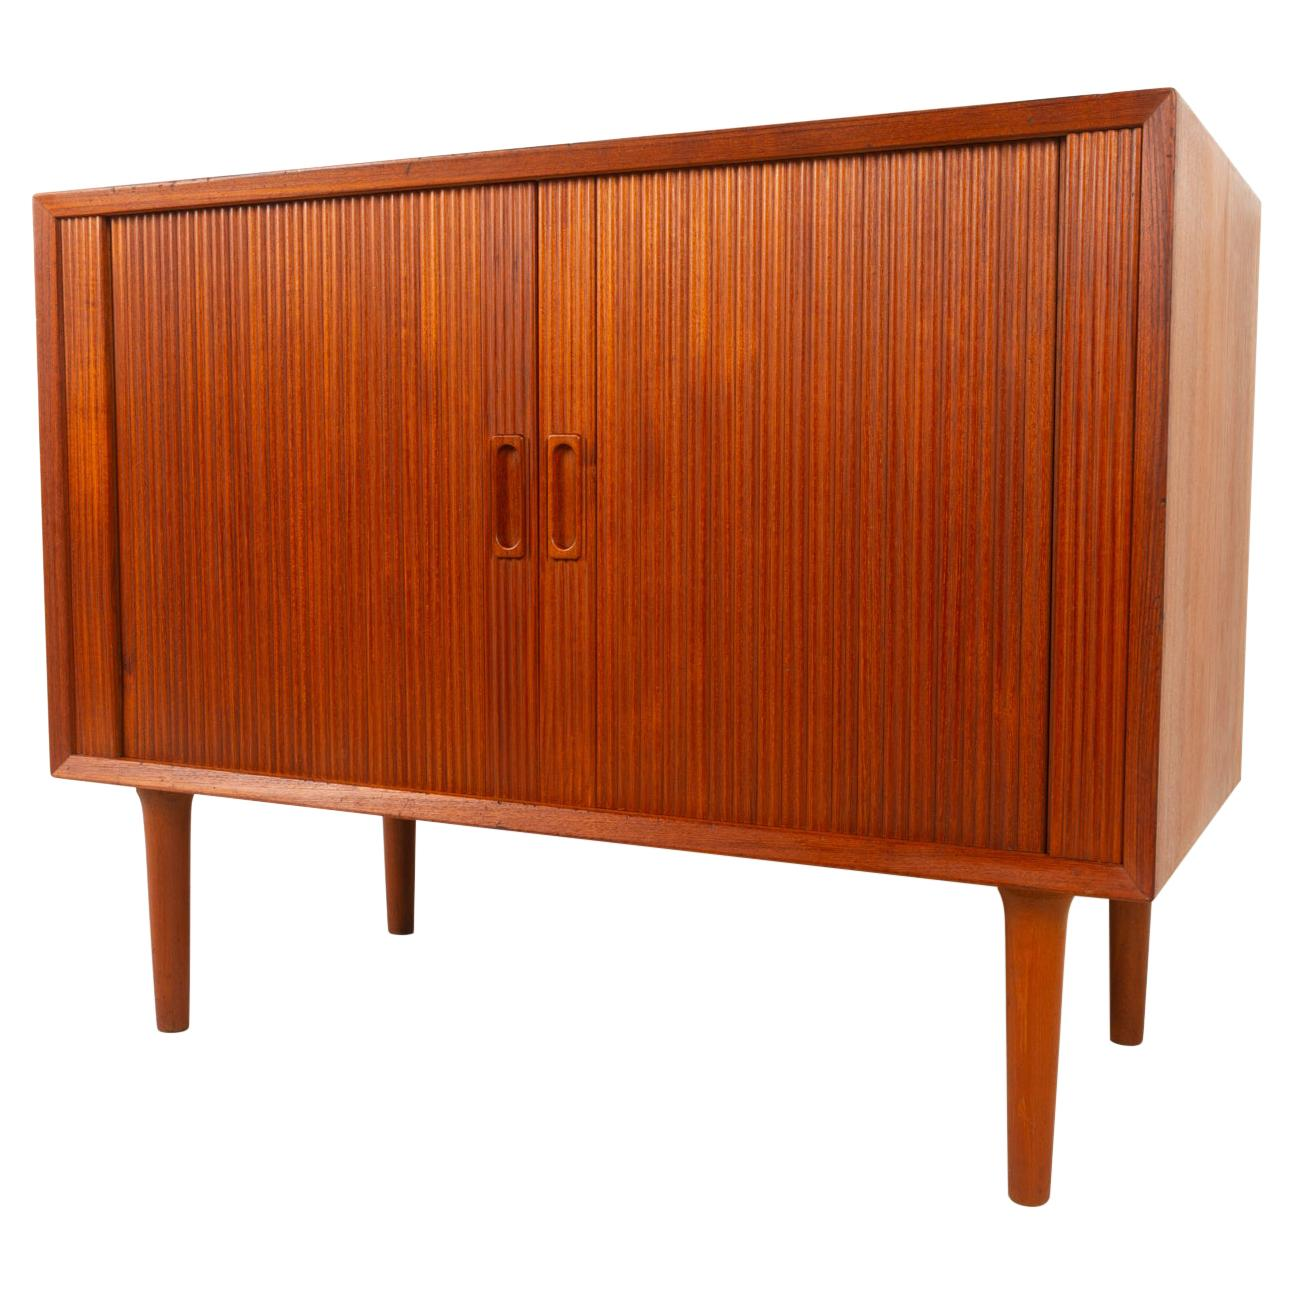 Vintage Danish Teak Cabinet with Tambour Doors by Lyby Møbler, 1960s